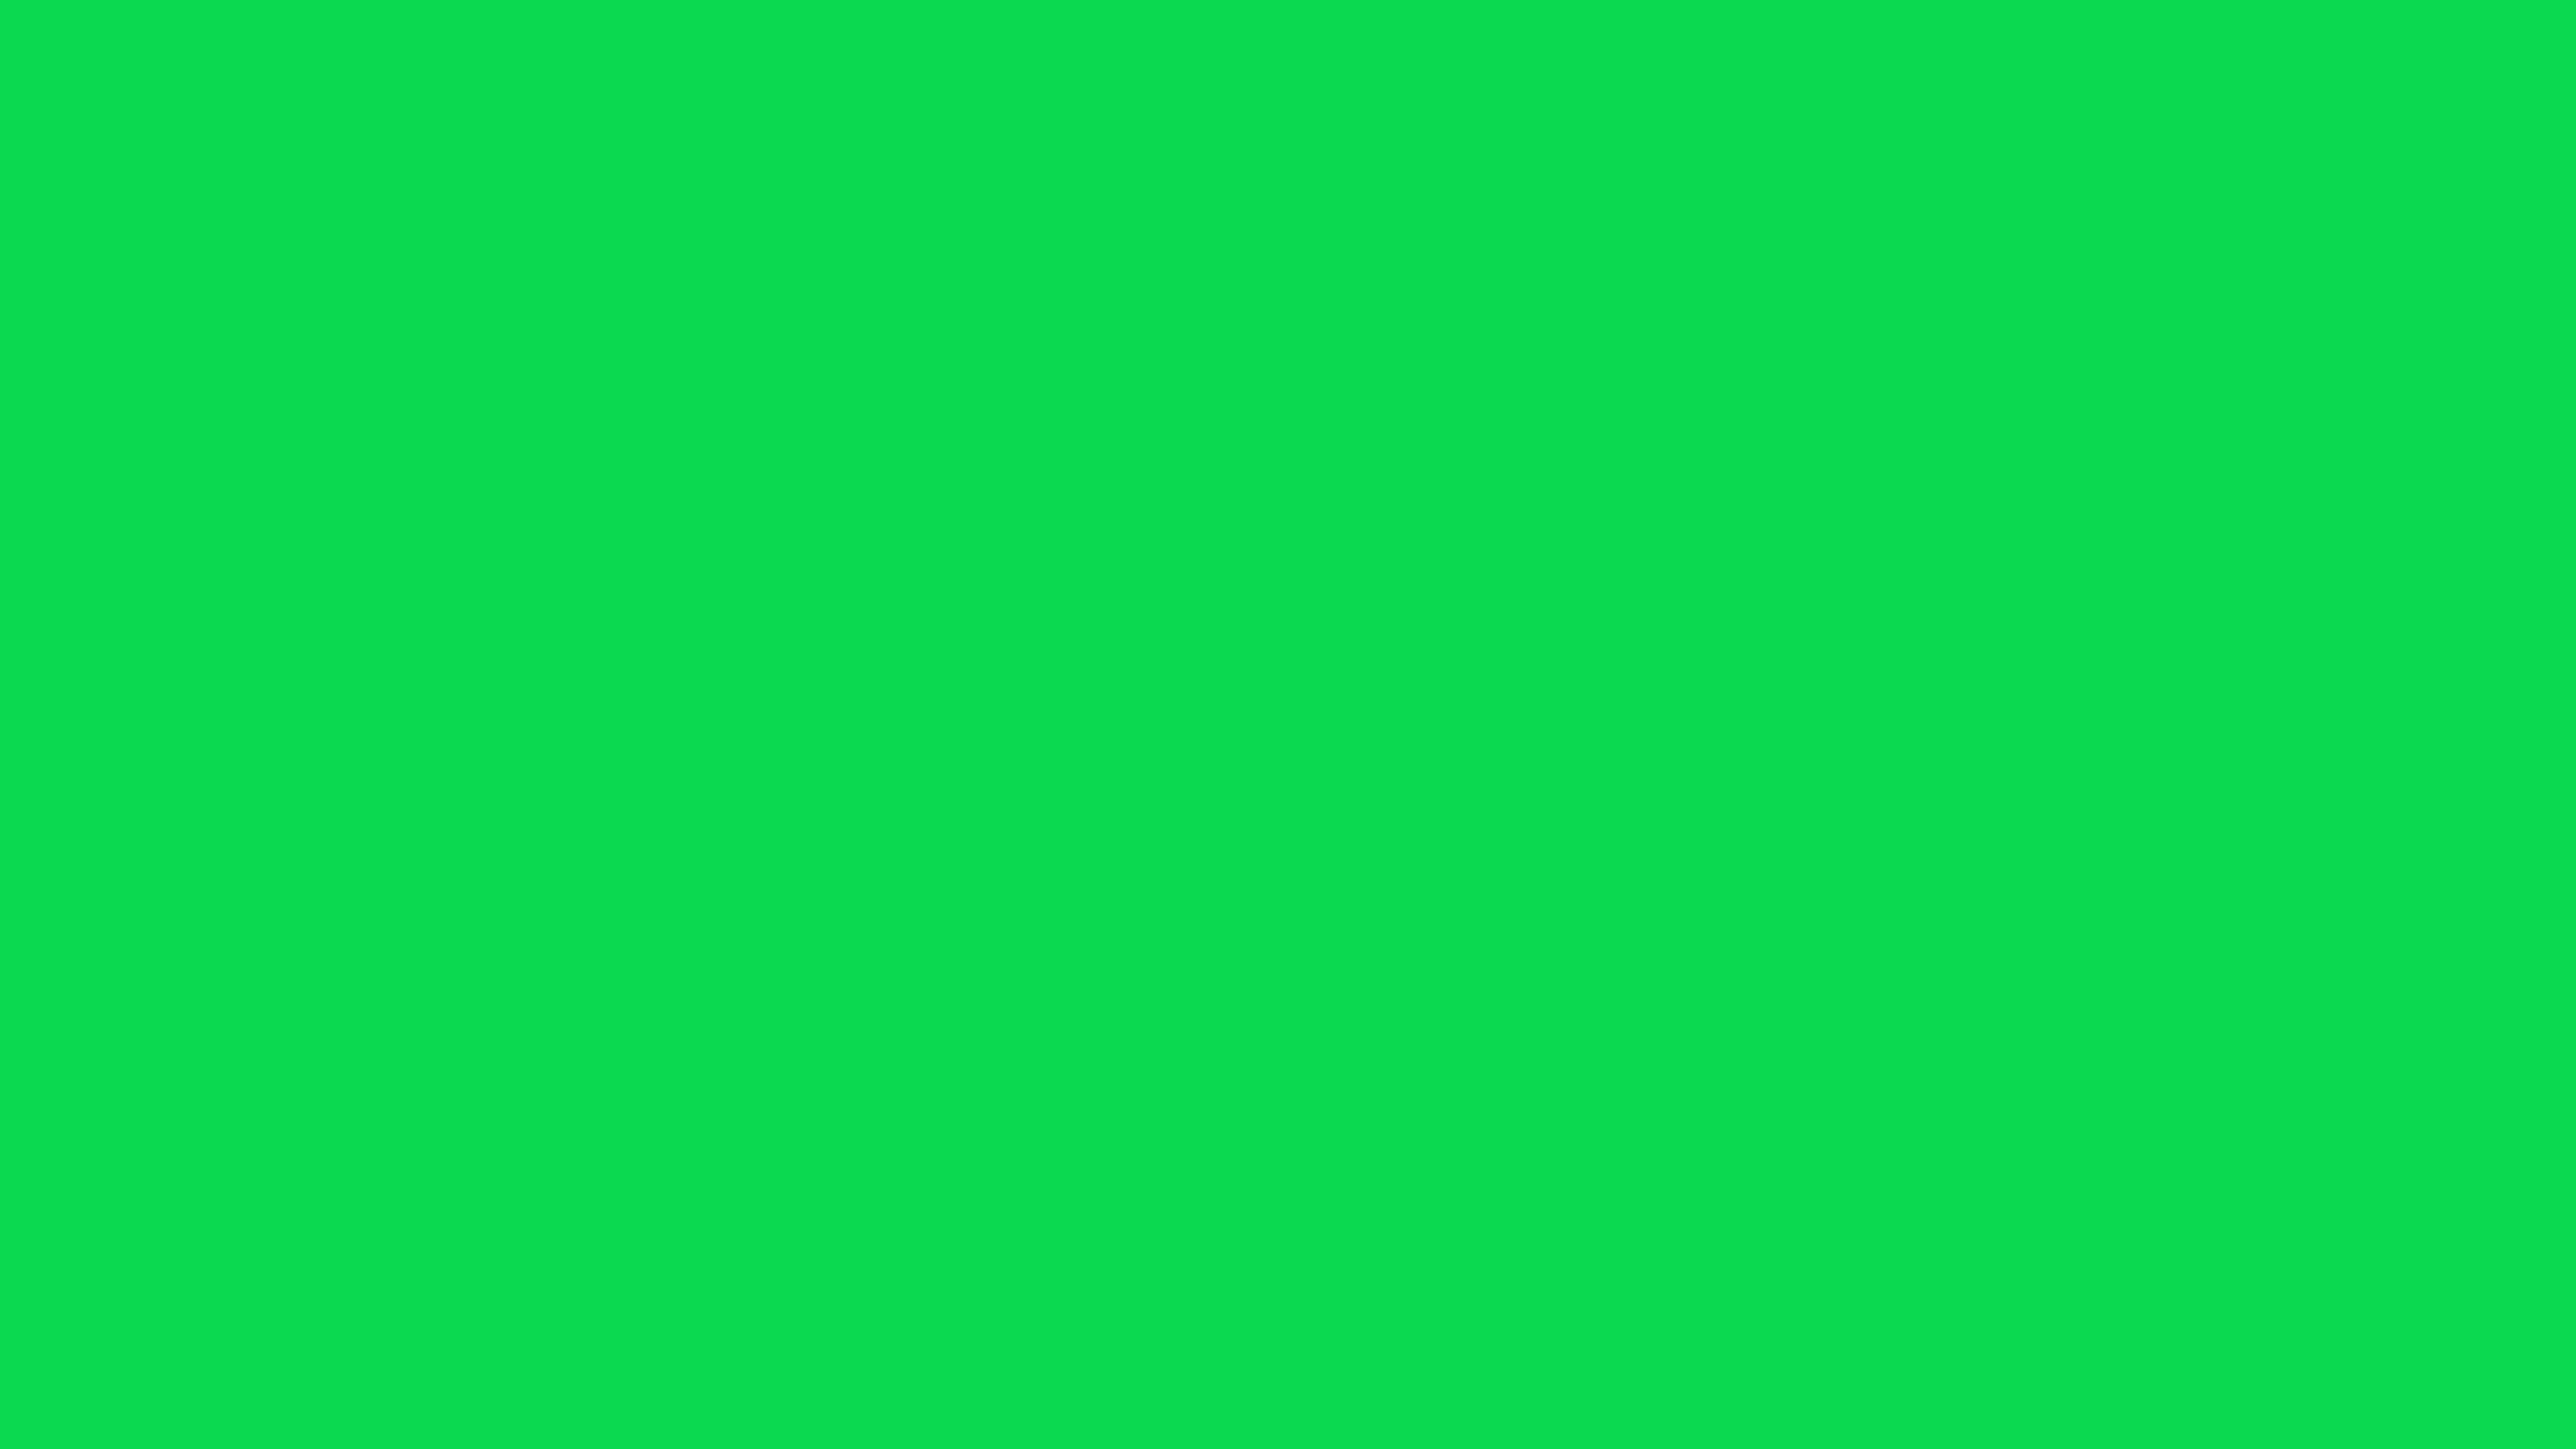 3840x2160 Malachite Solid Color Background